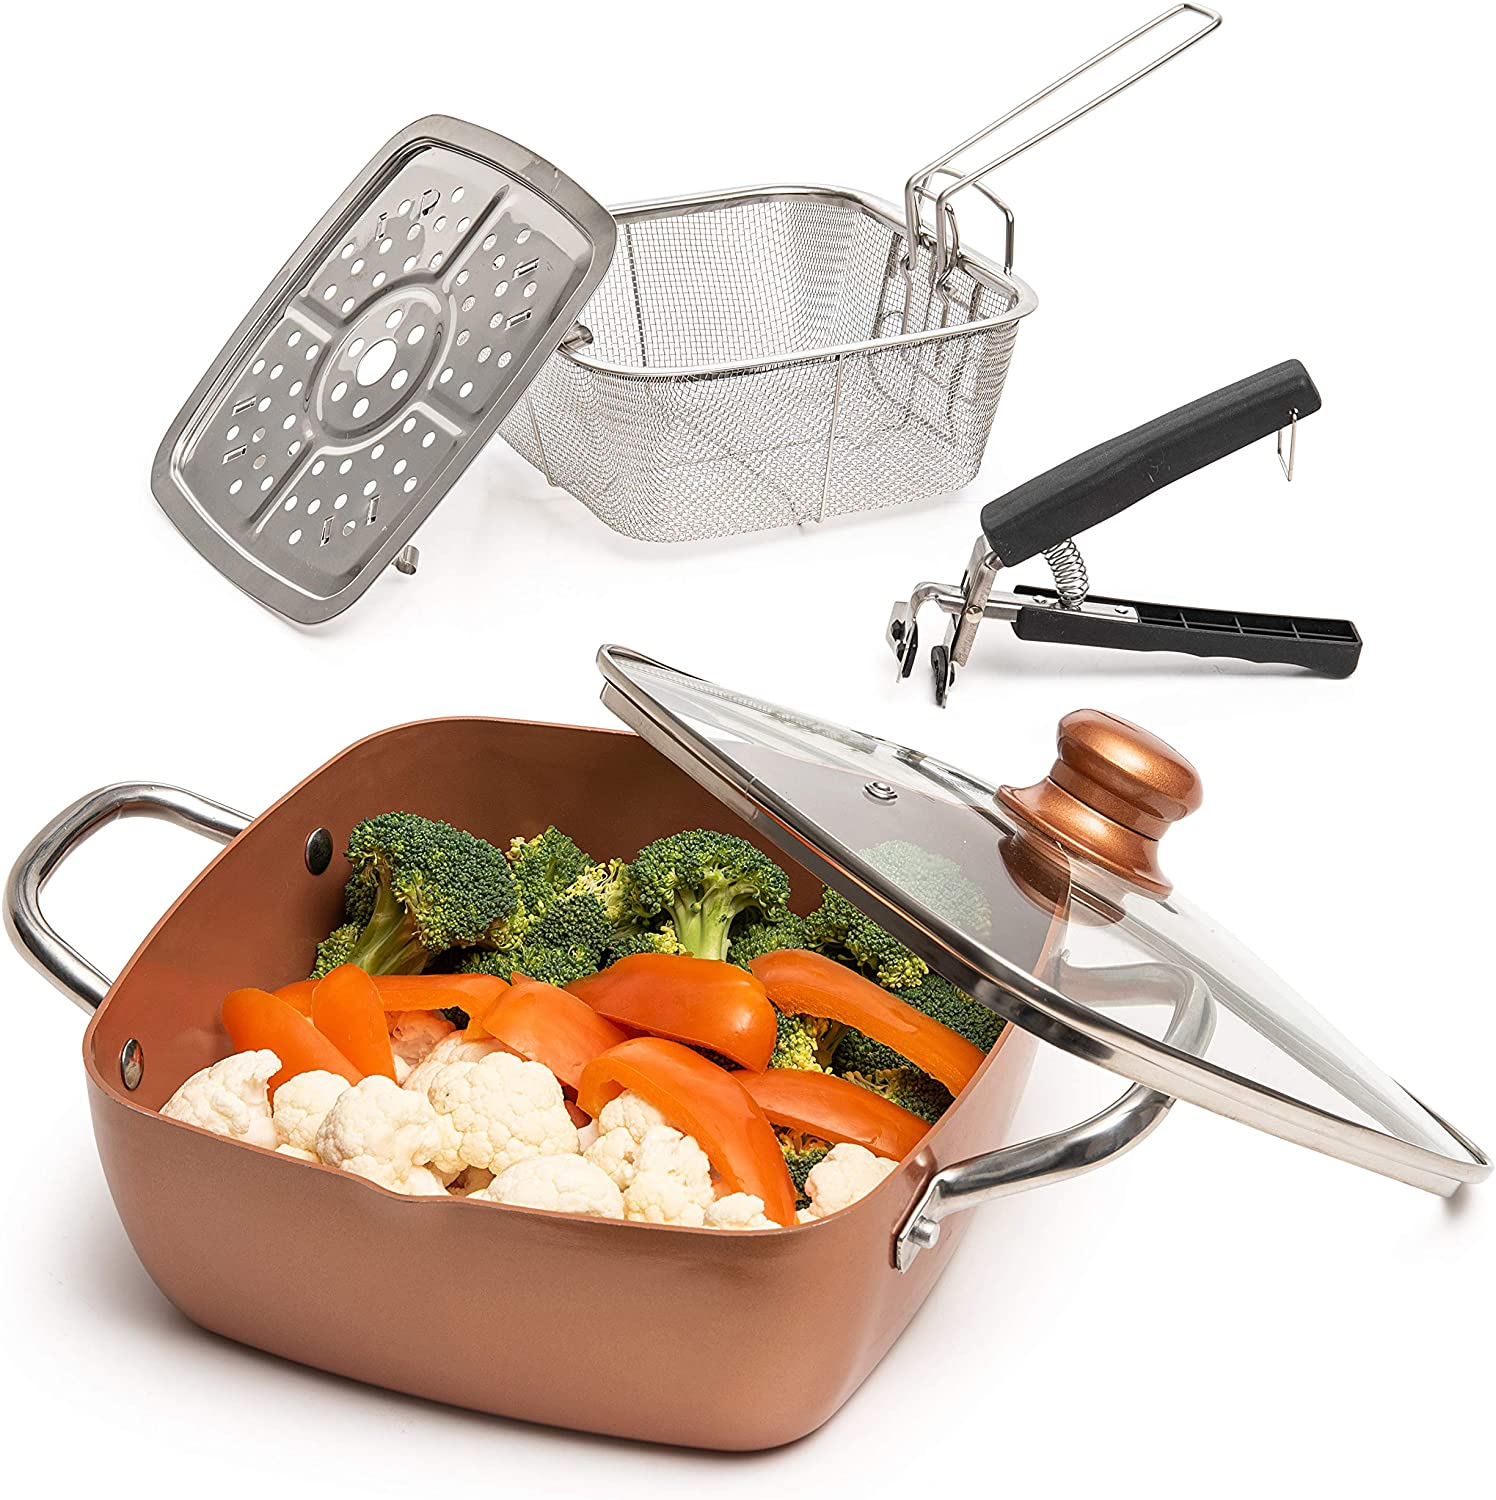 Moss & Stone Copper 5 Piece Set Chef Cookware, Non Stick Pan, Deep Square Pan, Fry Basket, Steamer Rack, Dishwasher & Oven Safe, 5 Quart